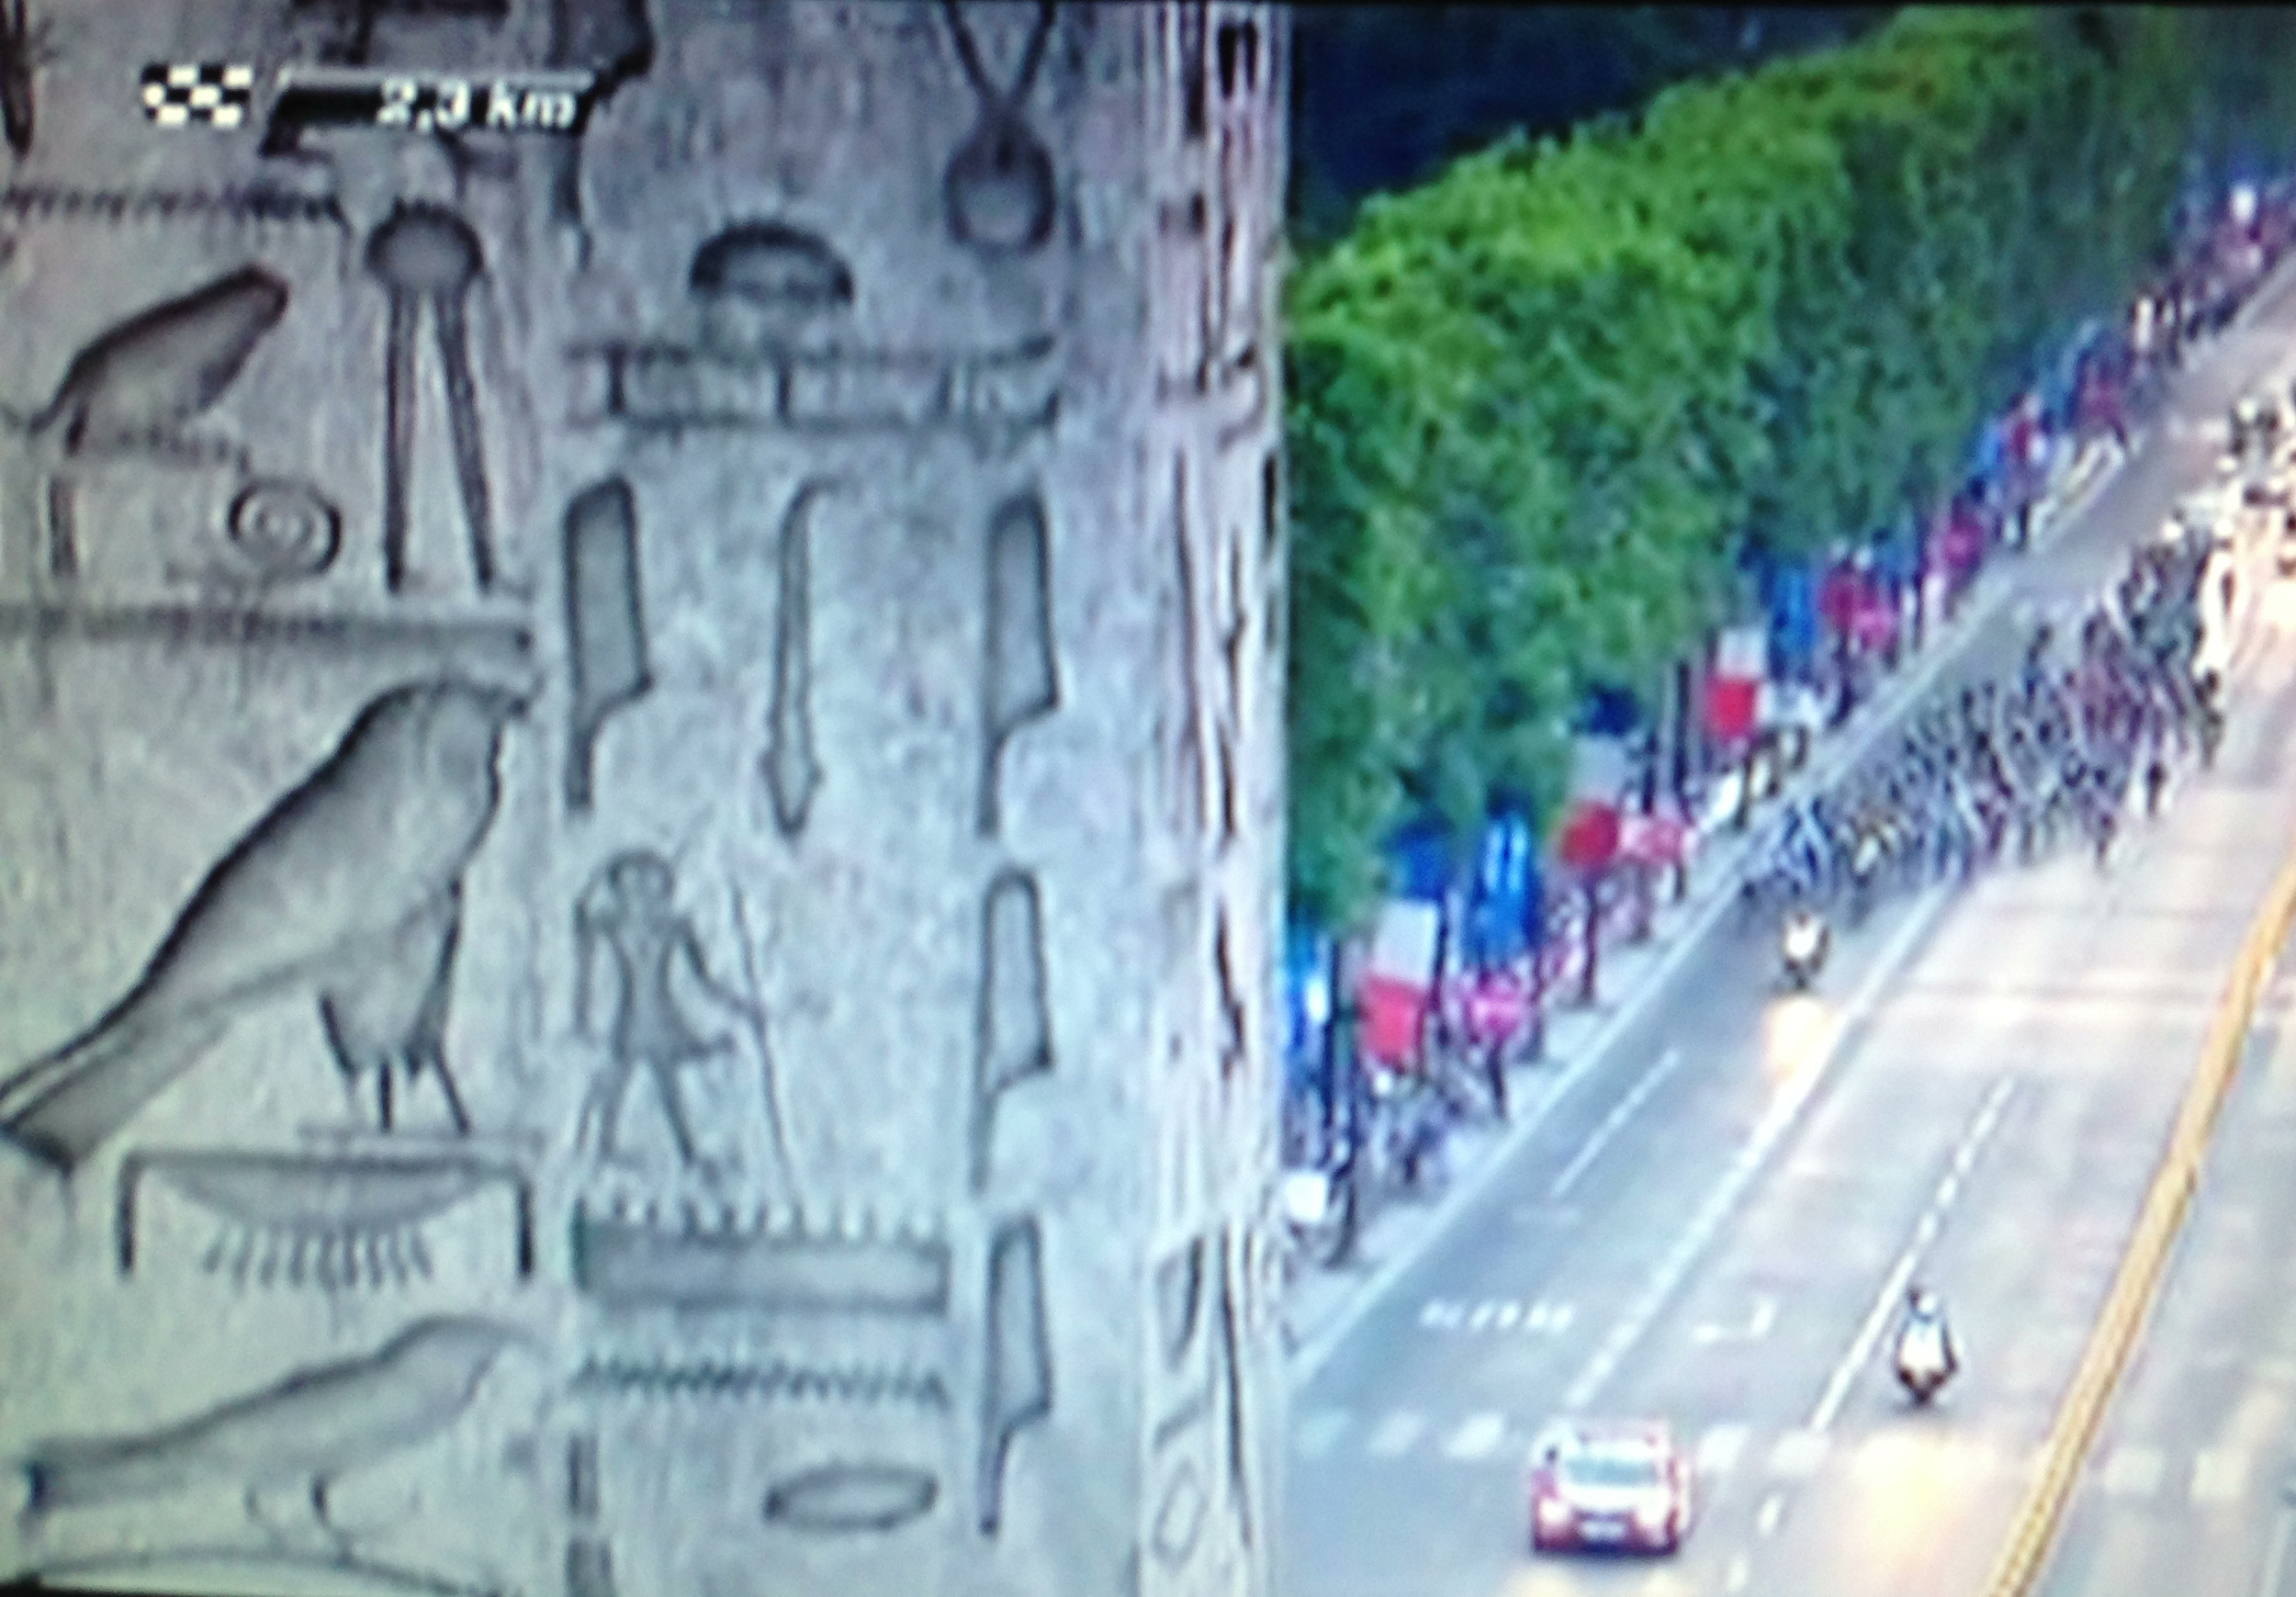 View of the obelisk in the tour de france